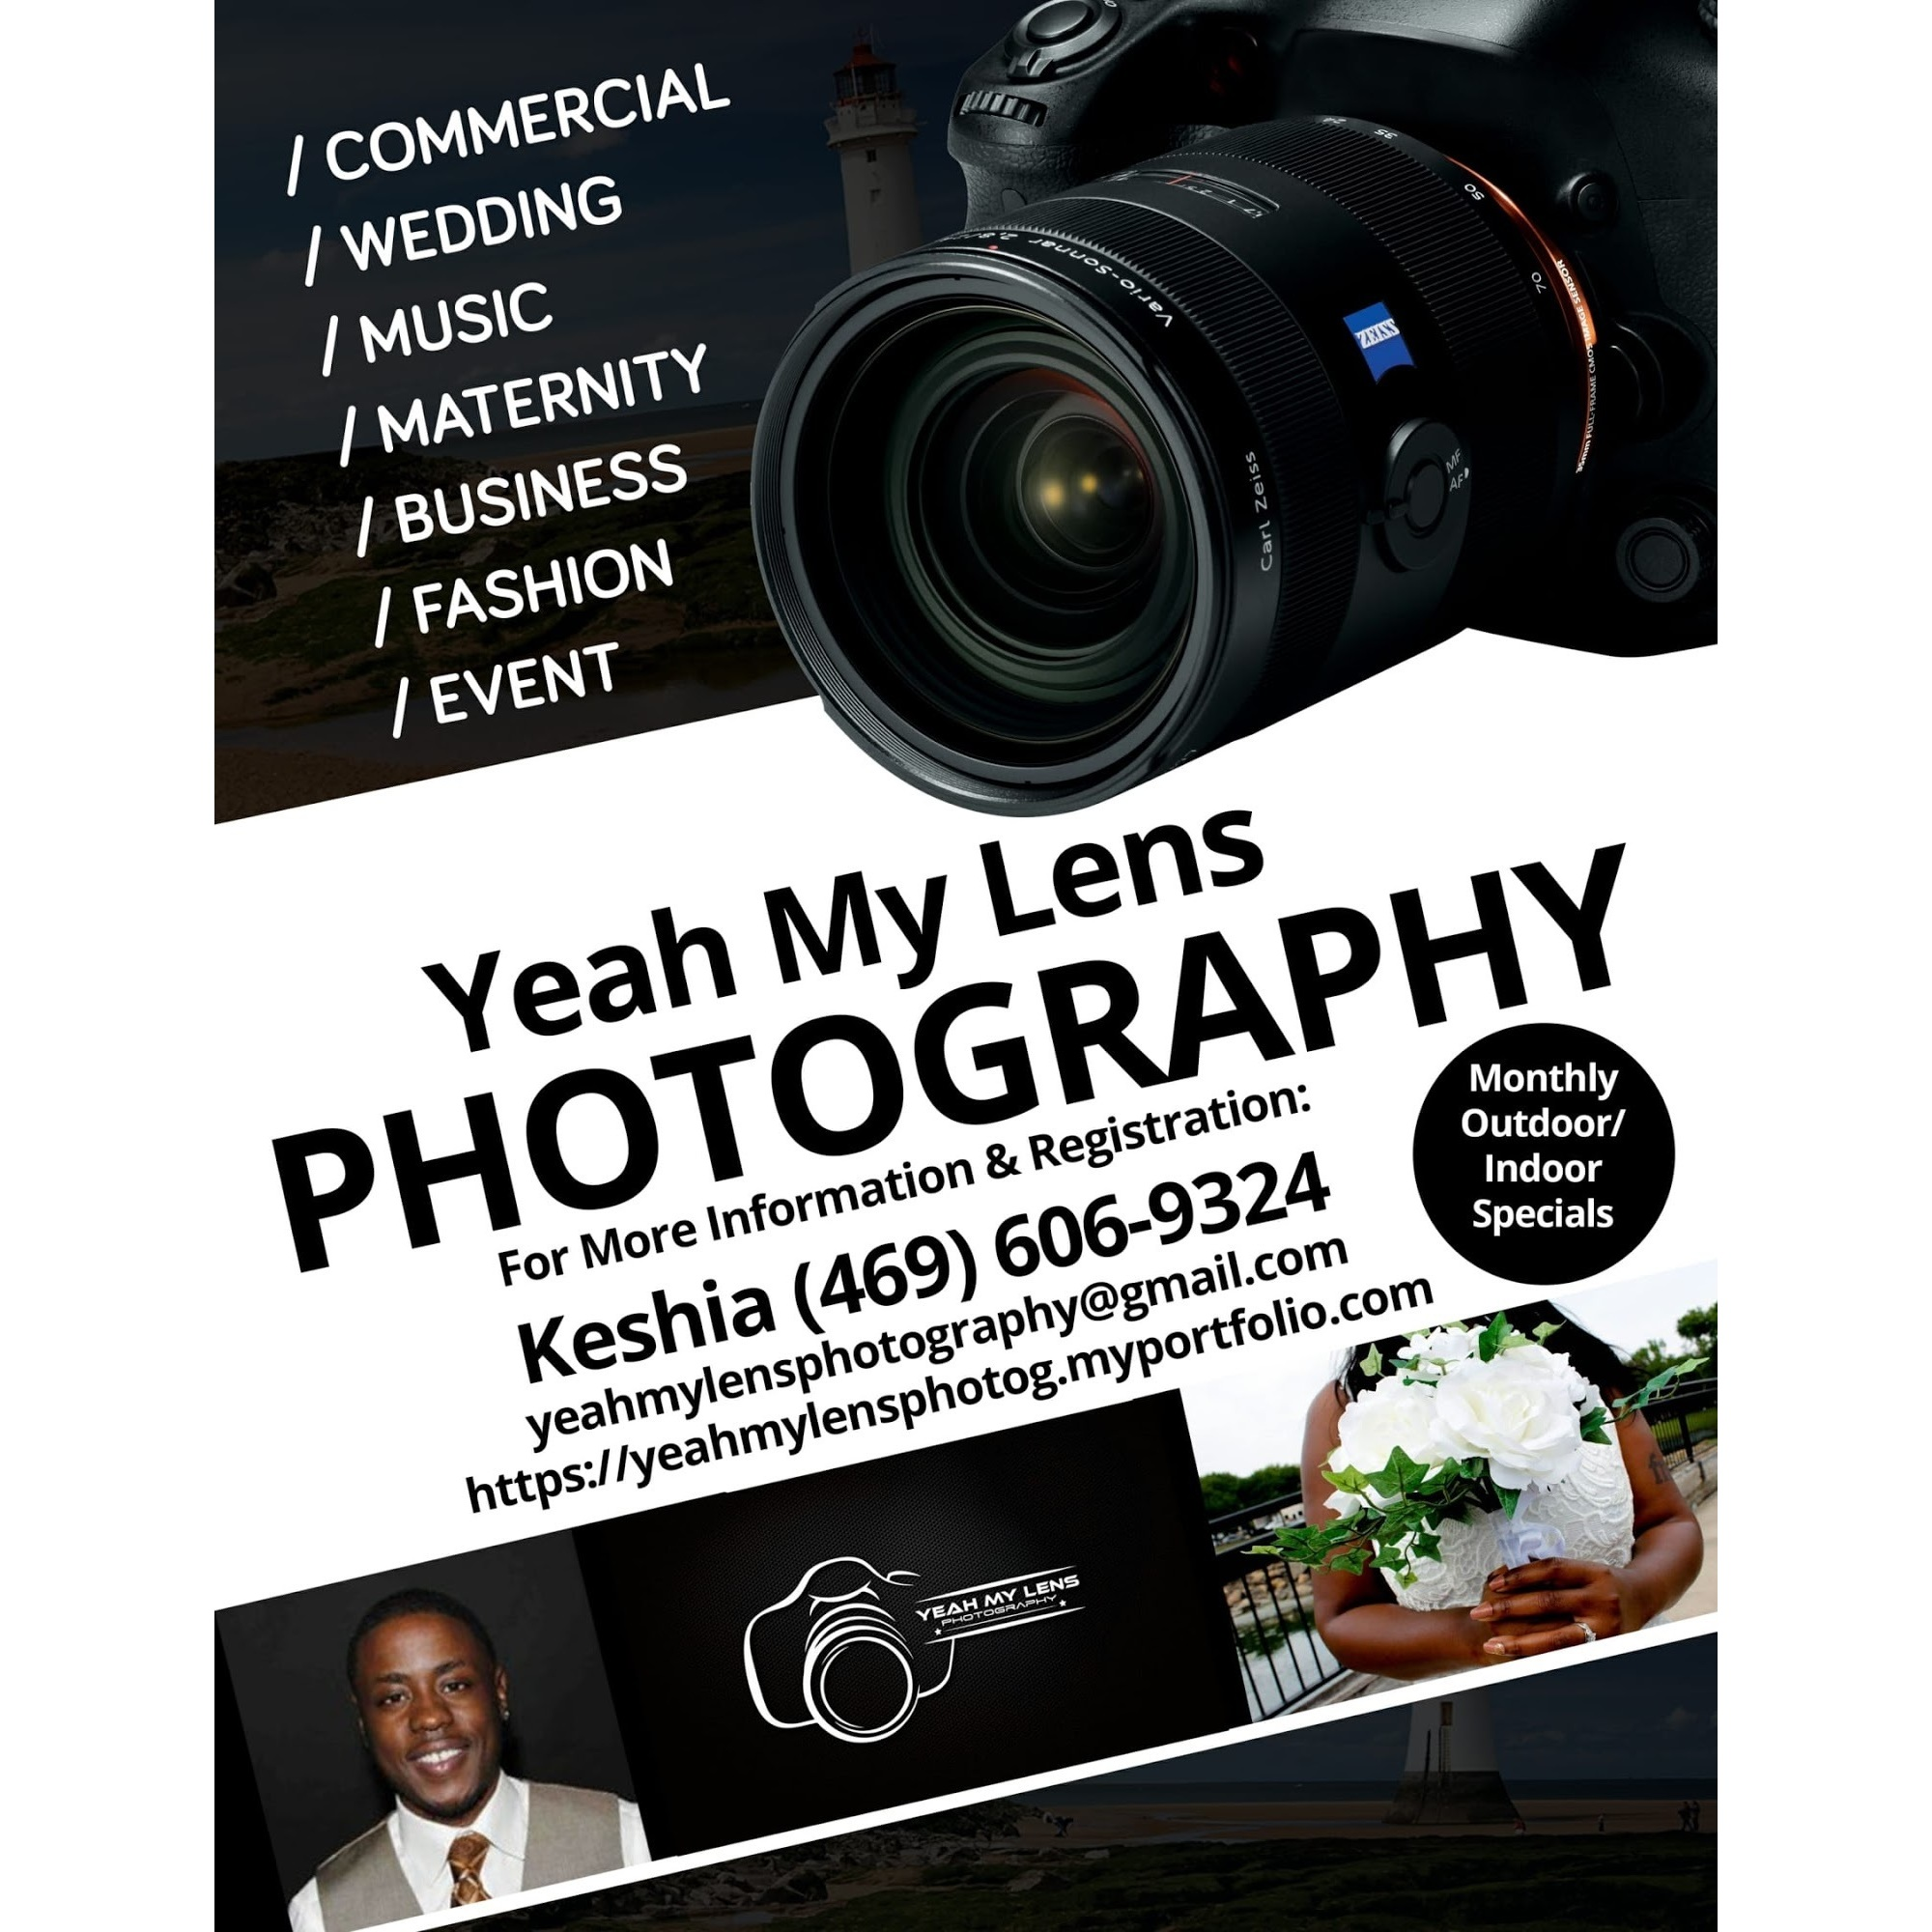 Yeah My Lens Photography LLC